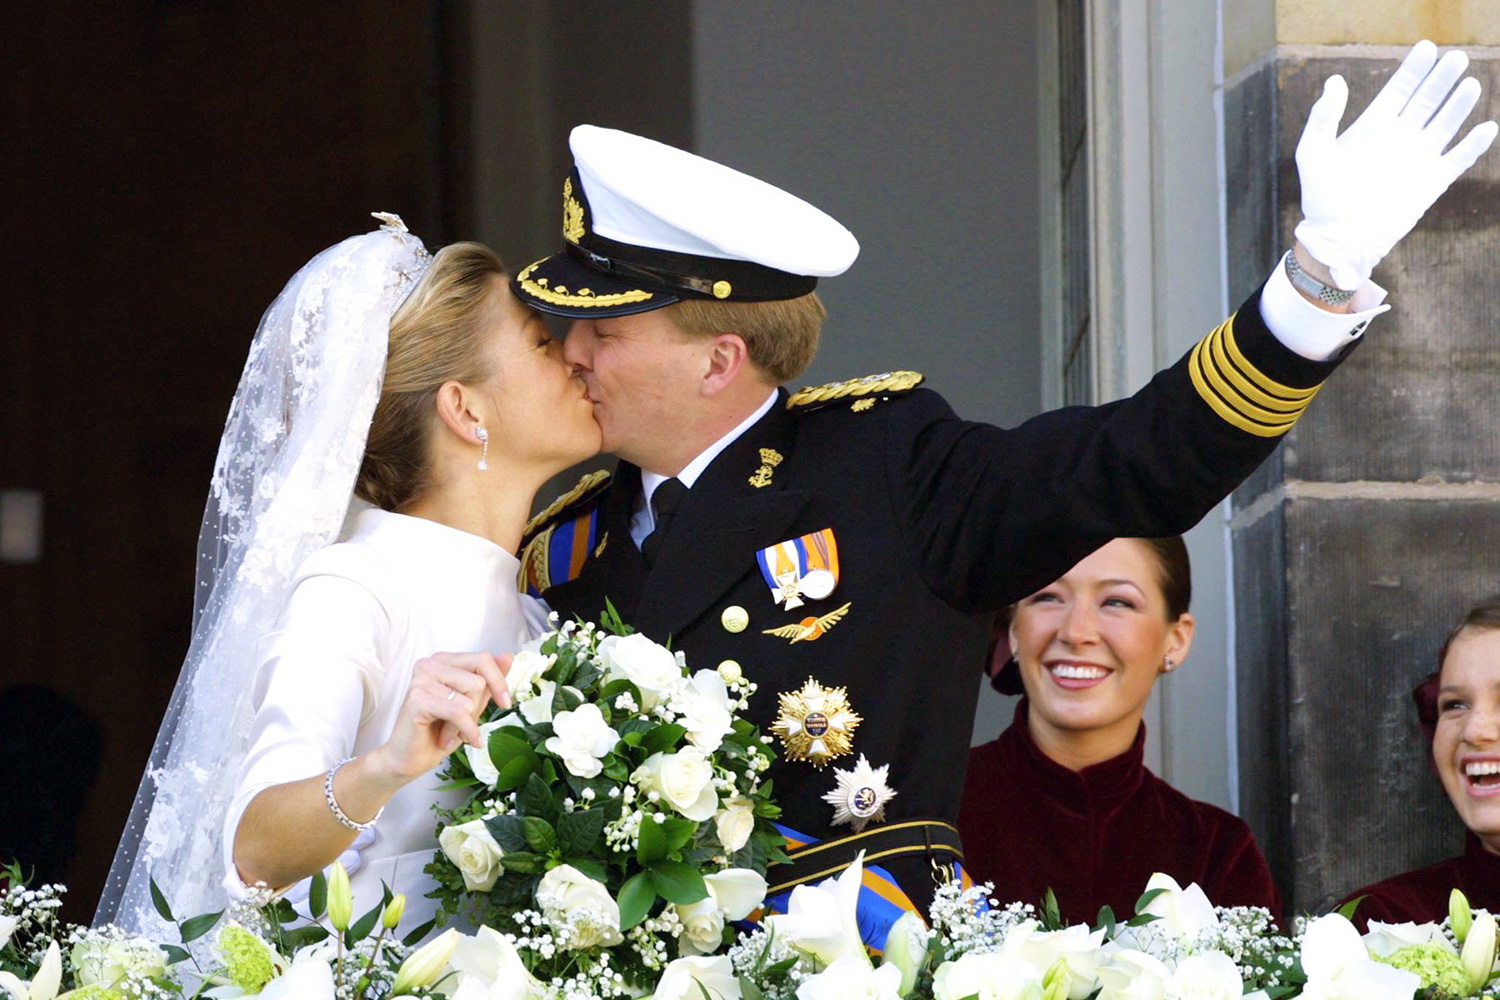 PRINCE WILLEM ALEXANDER AND MAXIMA ZORREGUIETA ON THE BALCONY OF THE ROYAL PALACE WEDDING OF PRINCE WILLEM ALEXANDER AND MAXIMA ZORREGUIETA IN AMSTERDAM, NETHERLANDS - 02 FEB 2002